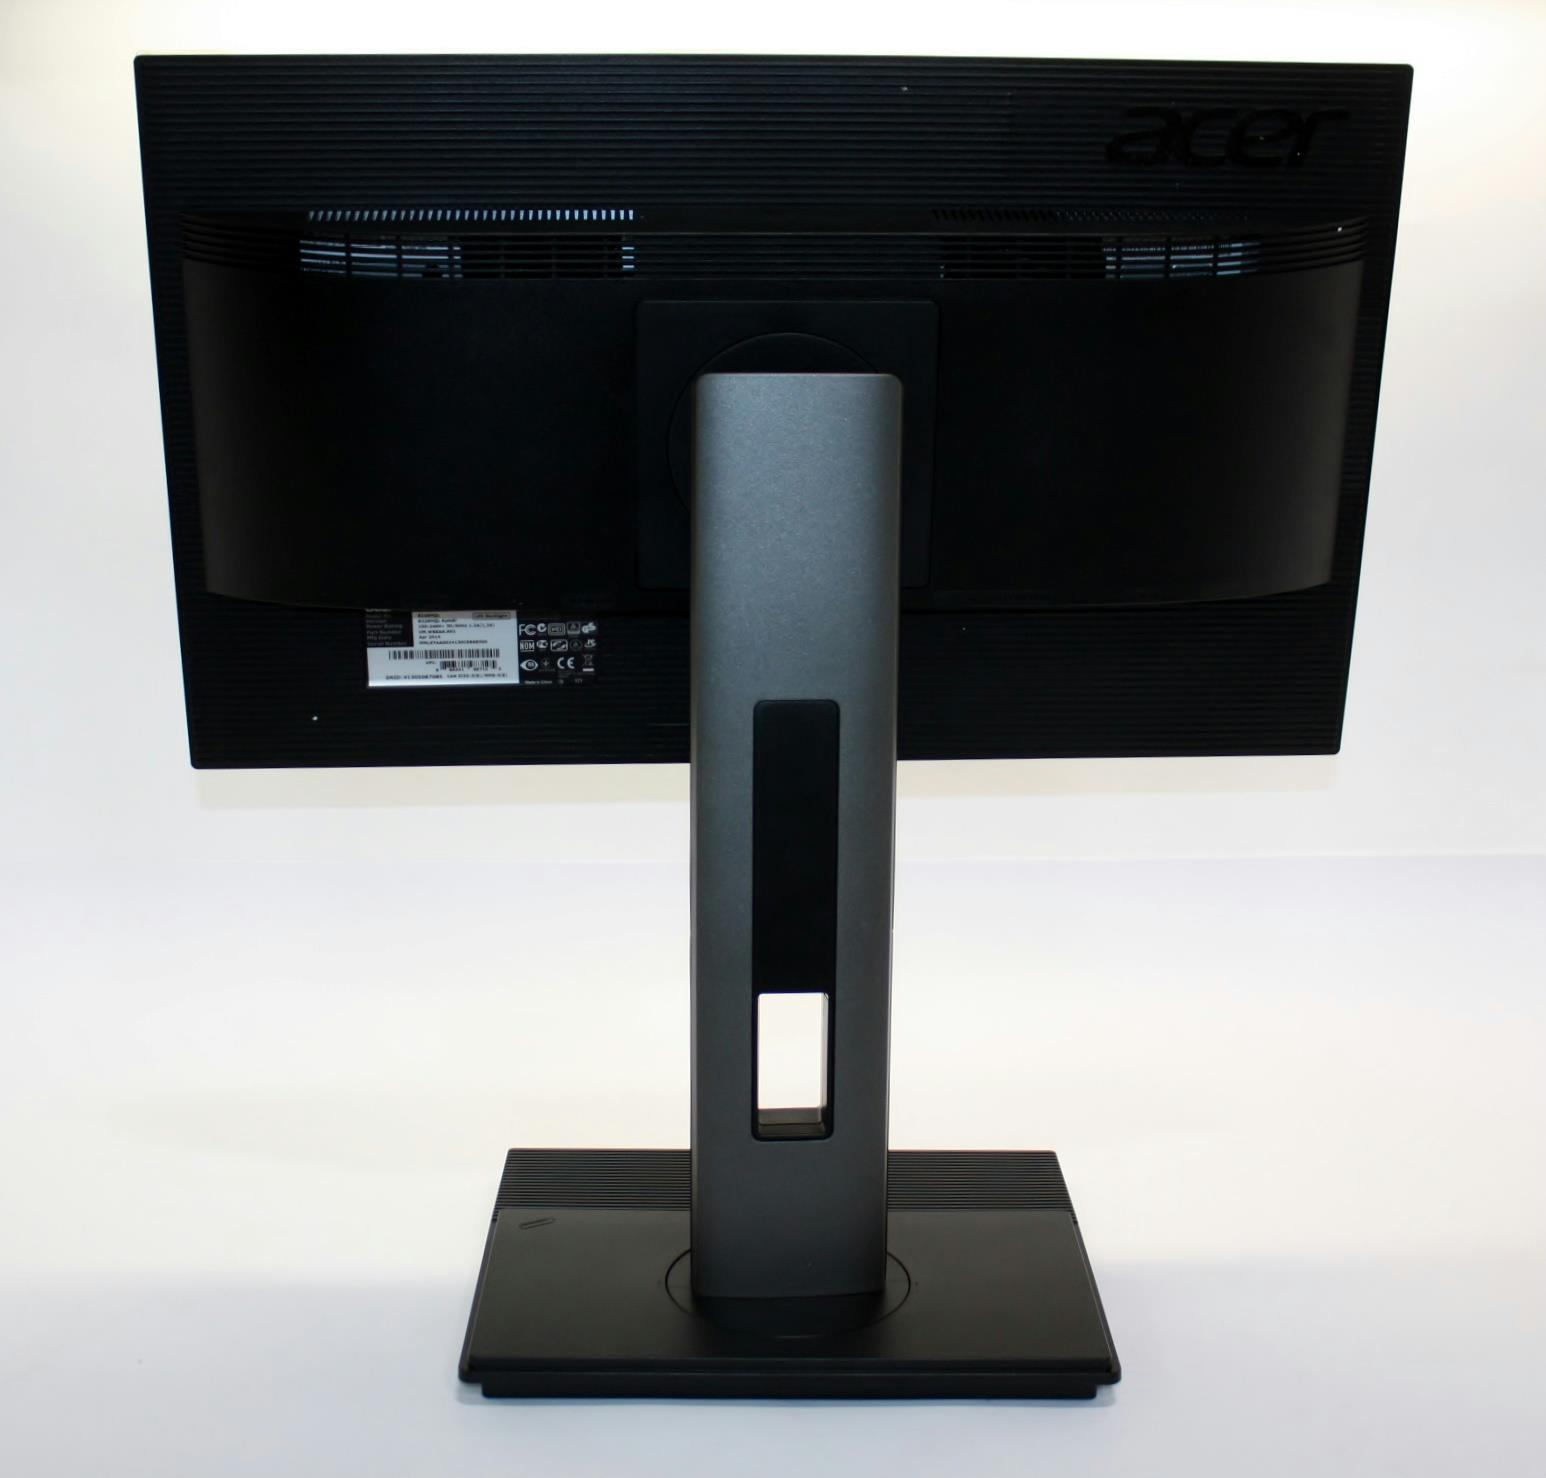 acer b226hql aymdr 22 widescreen led for parts monitor um wb6aa a01 800123393 ebay. Black Bedroom Furniture Sets. Home Design Ideas